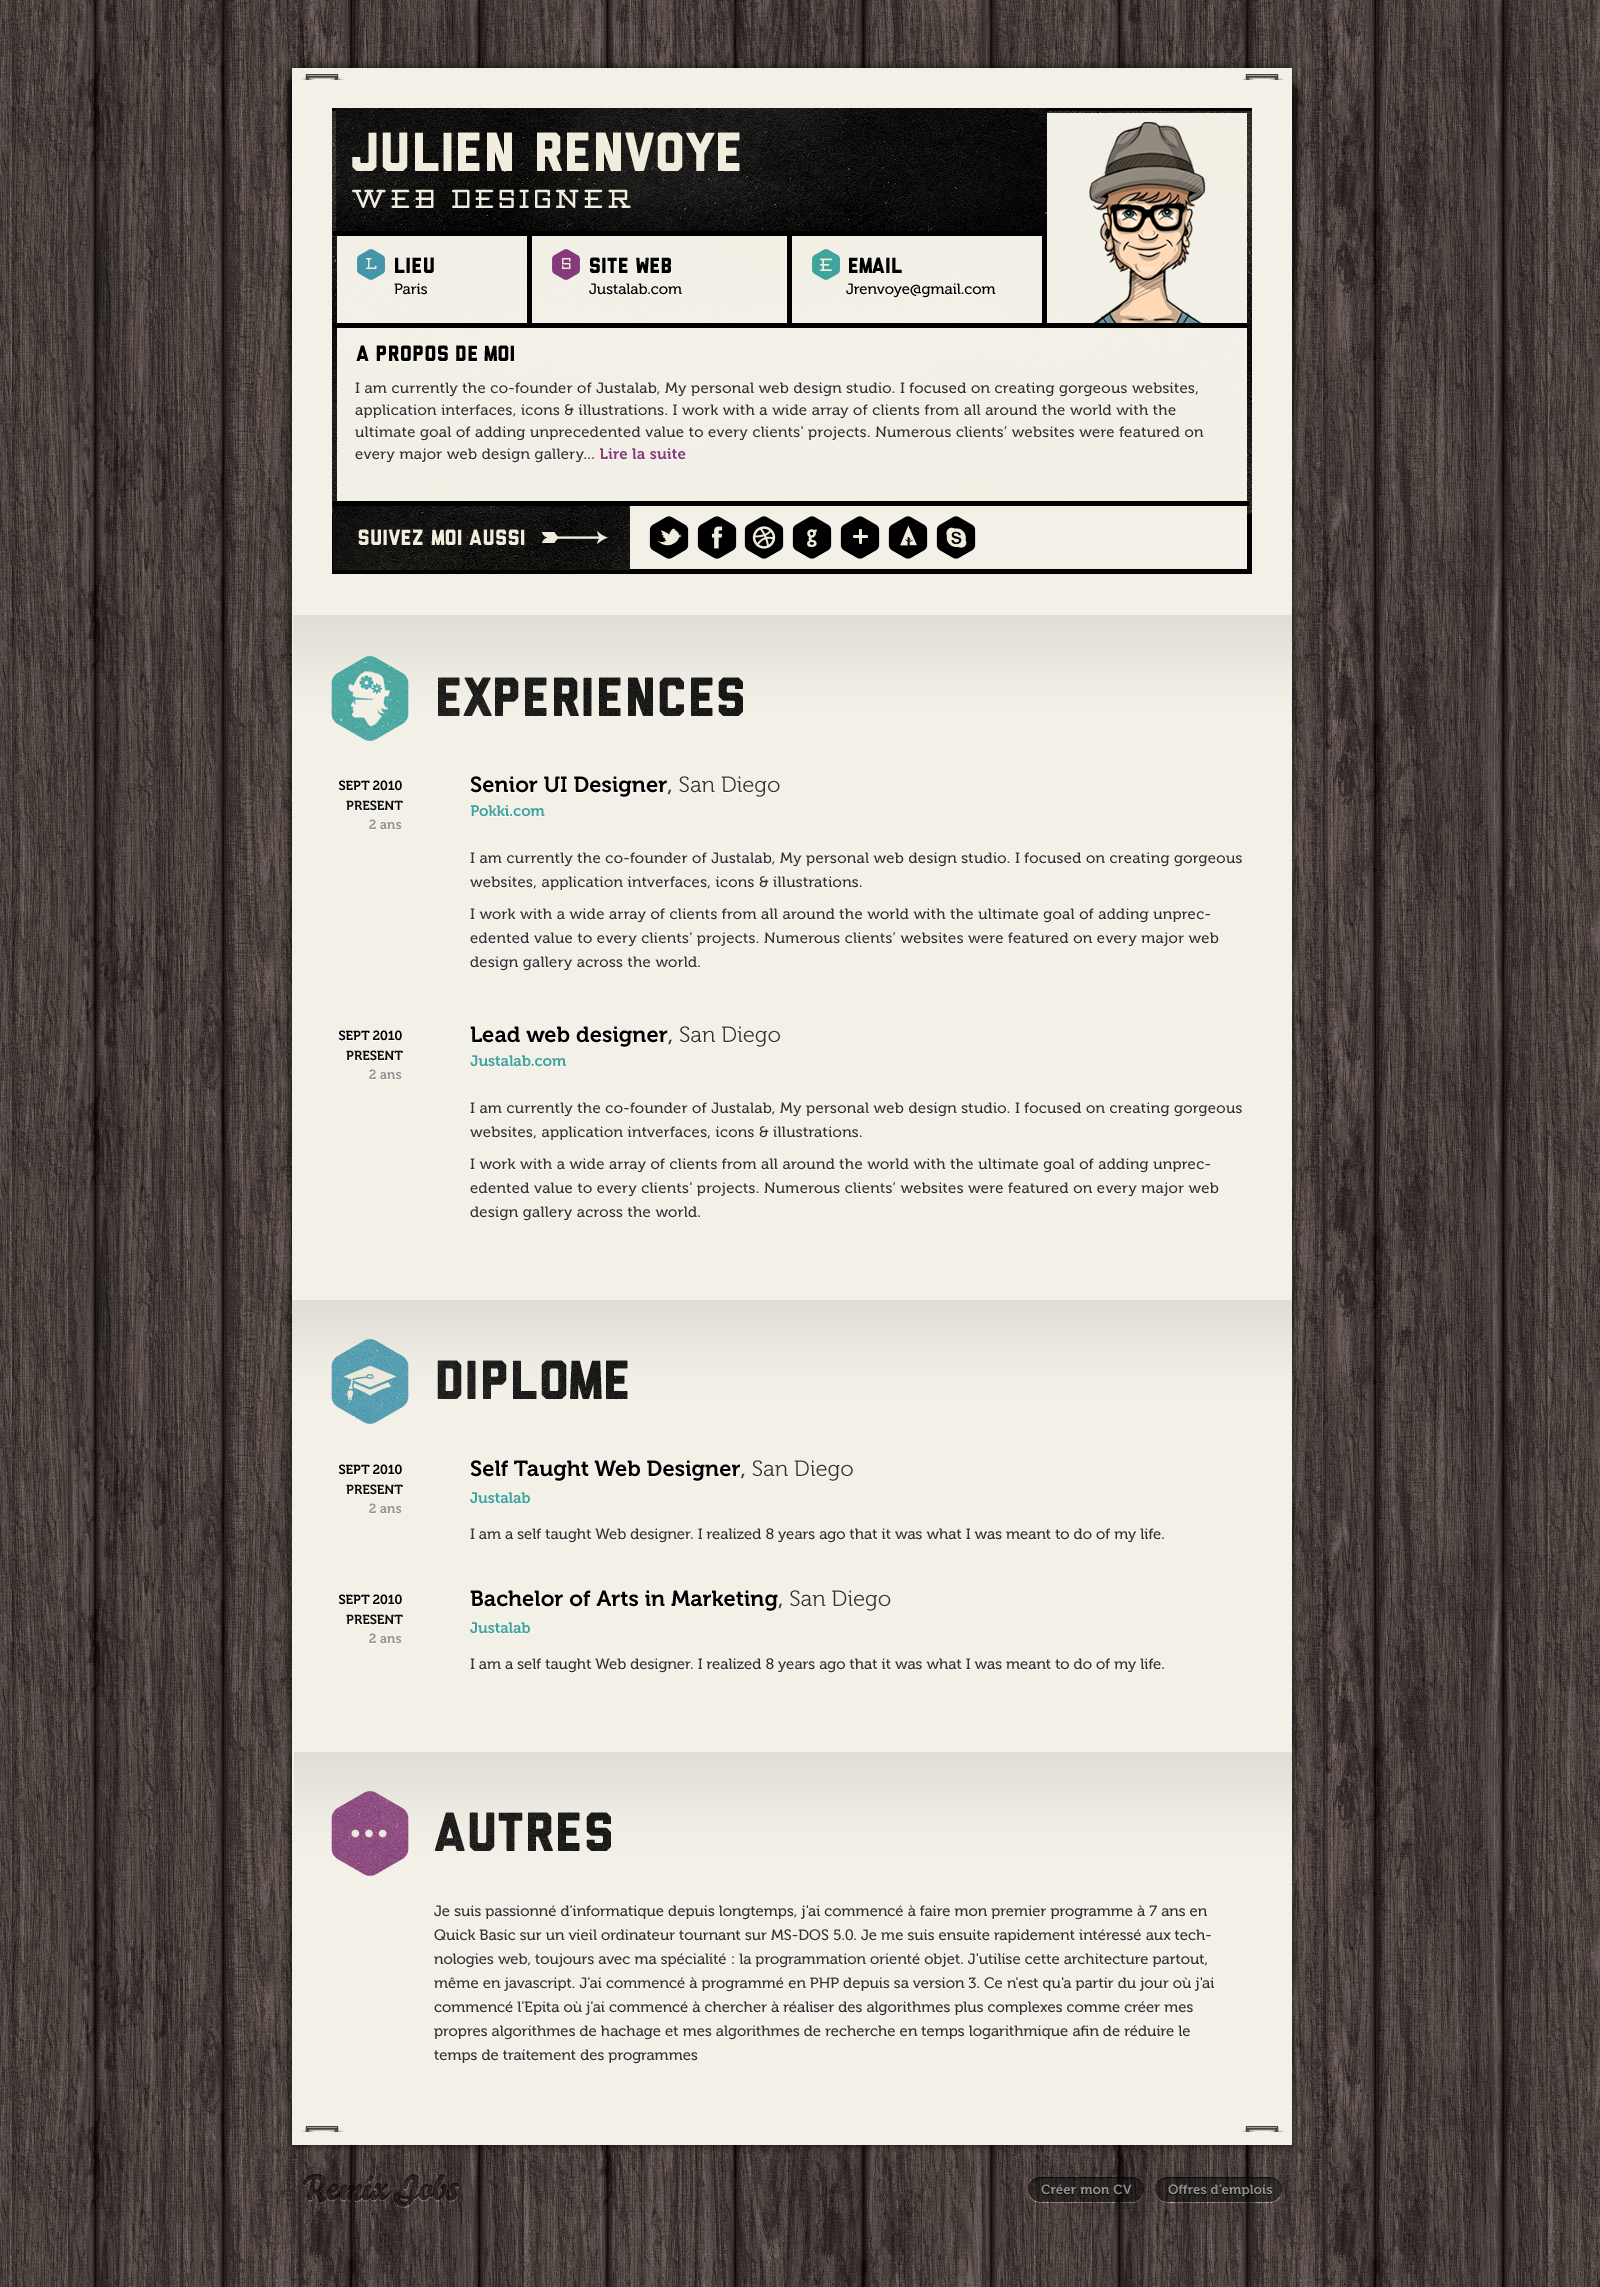 another great resume concept  for more ideas search aaron sheppard  u0026 look at my  u0026quot